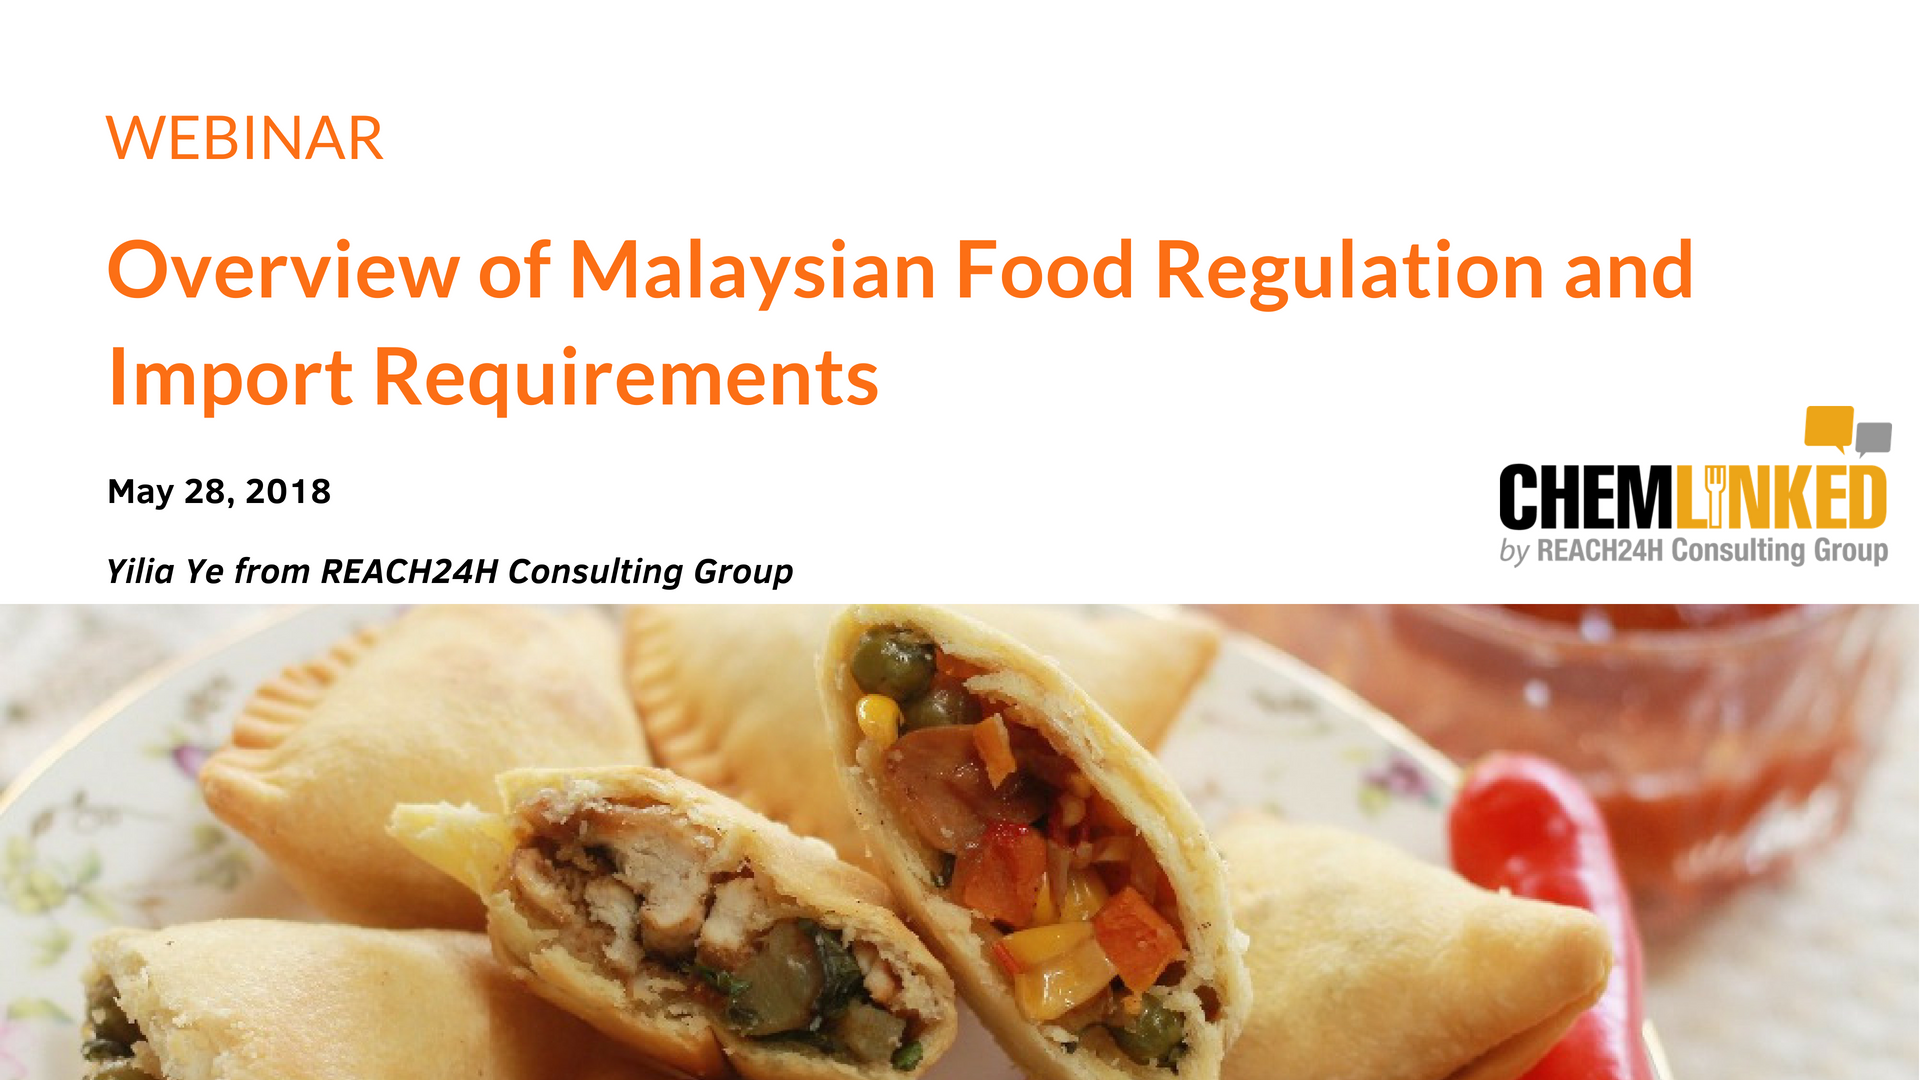 Overview of Malaysian Food Regulation and Import Requirements